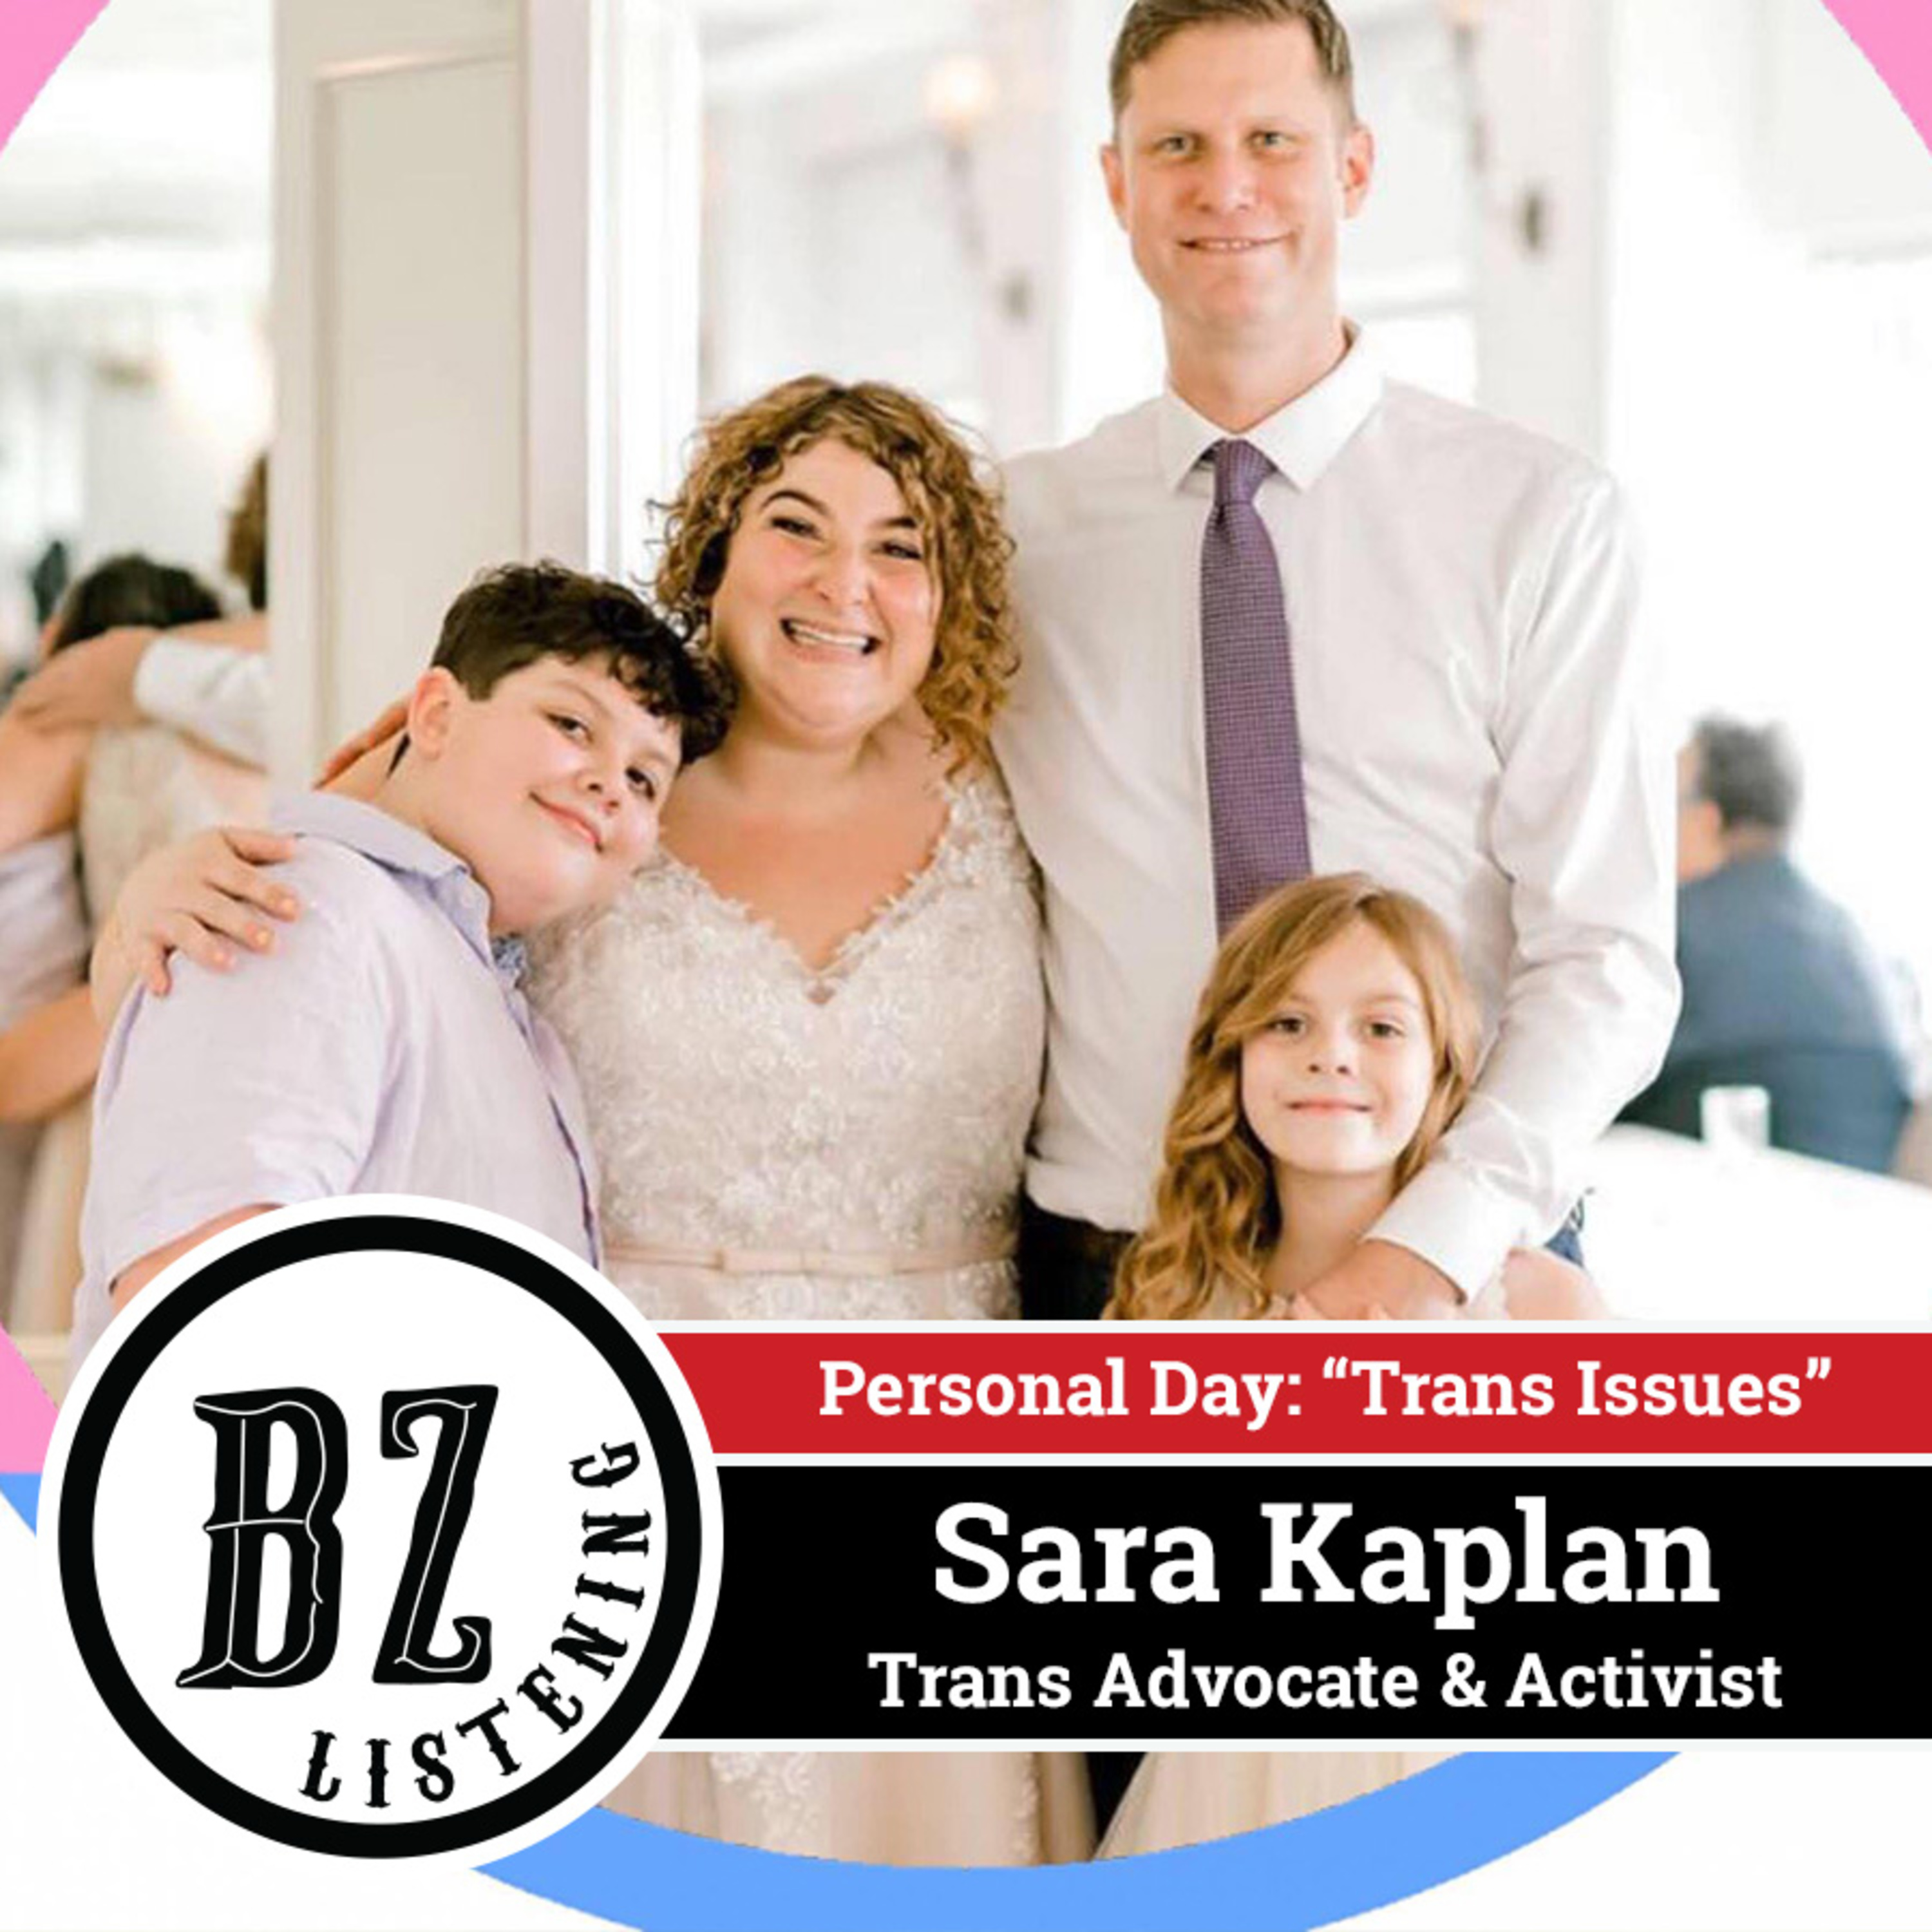 14. Personal Day: Trans Issues with Sara Kaplan